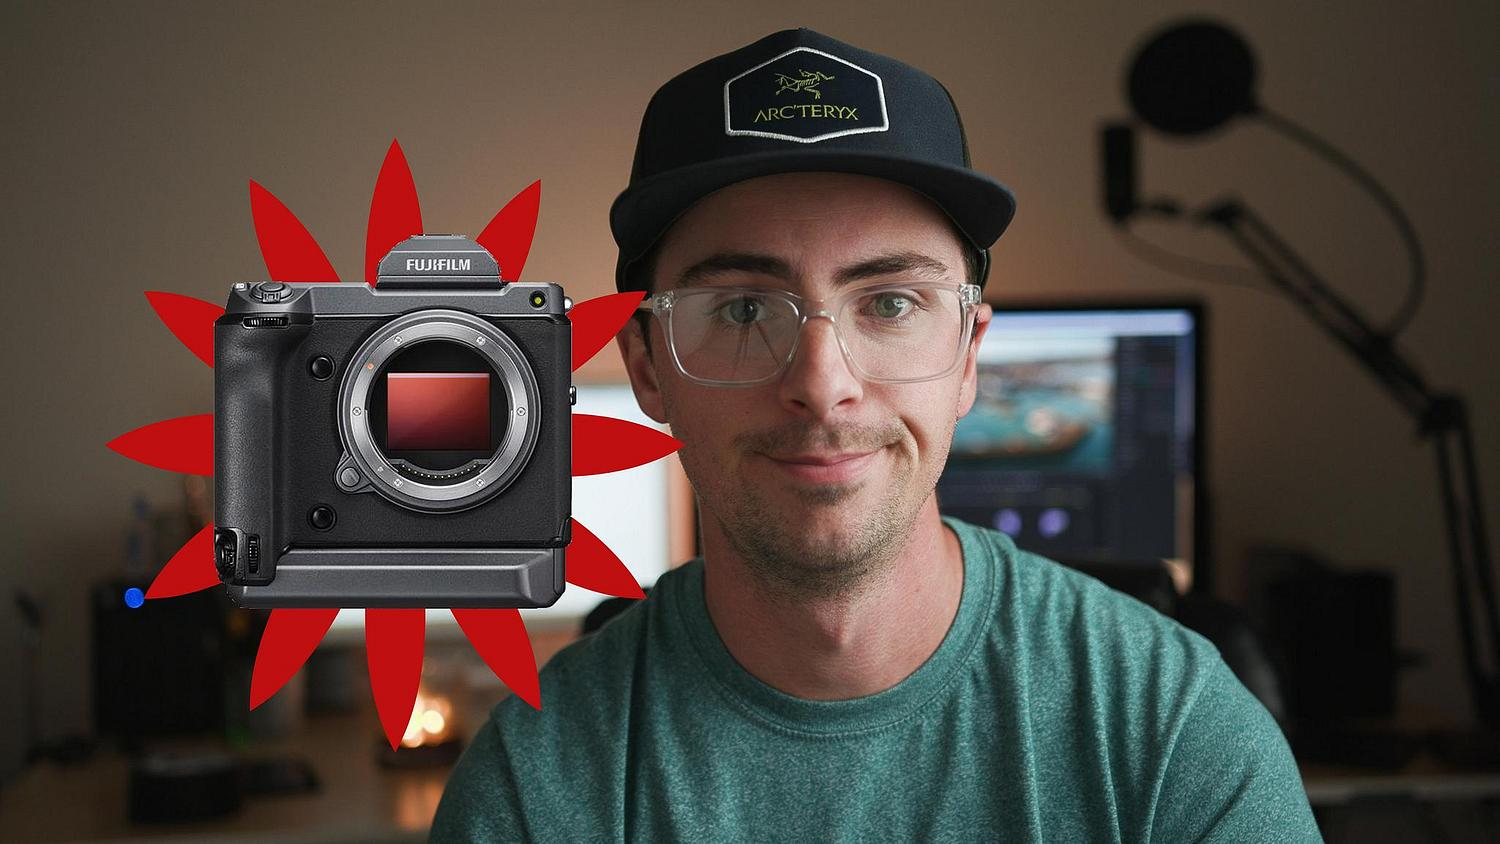 Fuji GFX 100 camera announcement and thoughts!